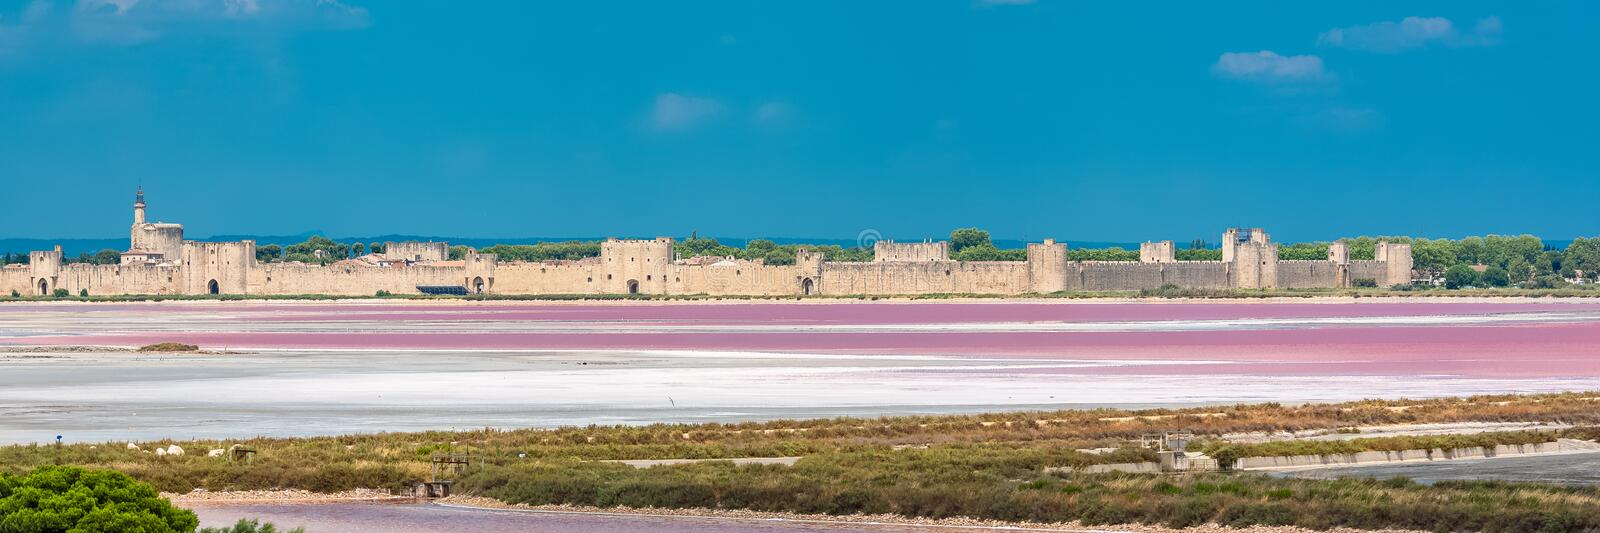 Aigues-Mortes royaltyfria foton